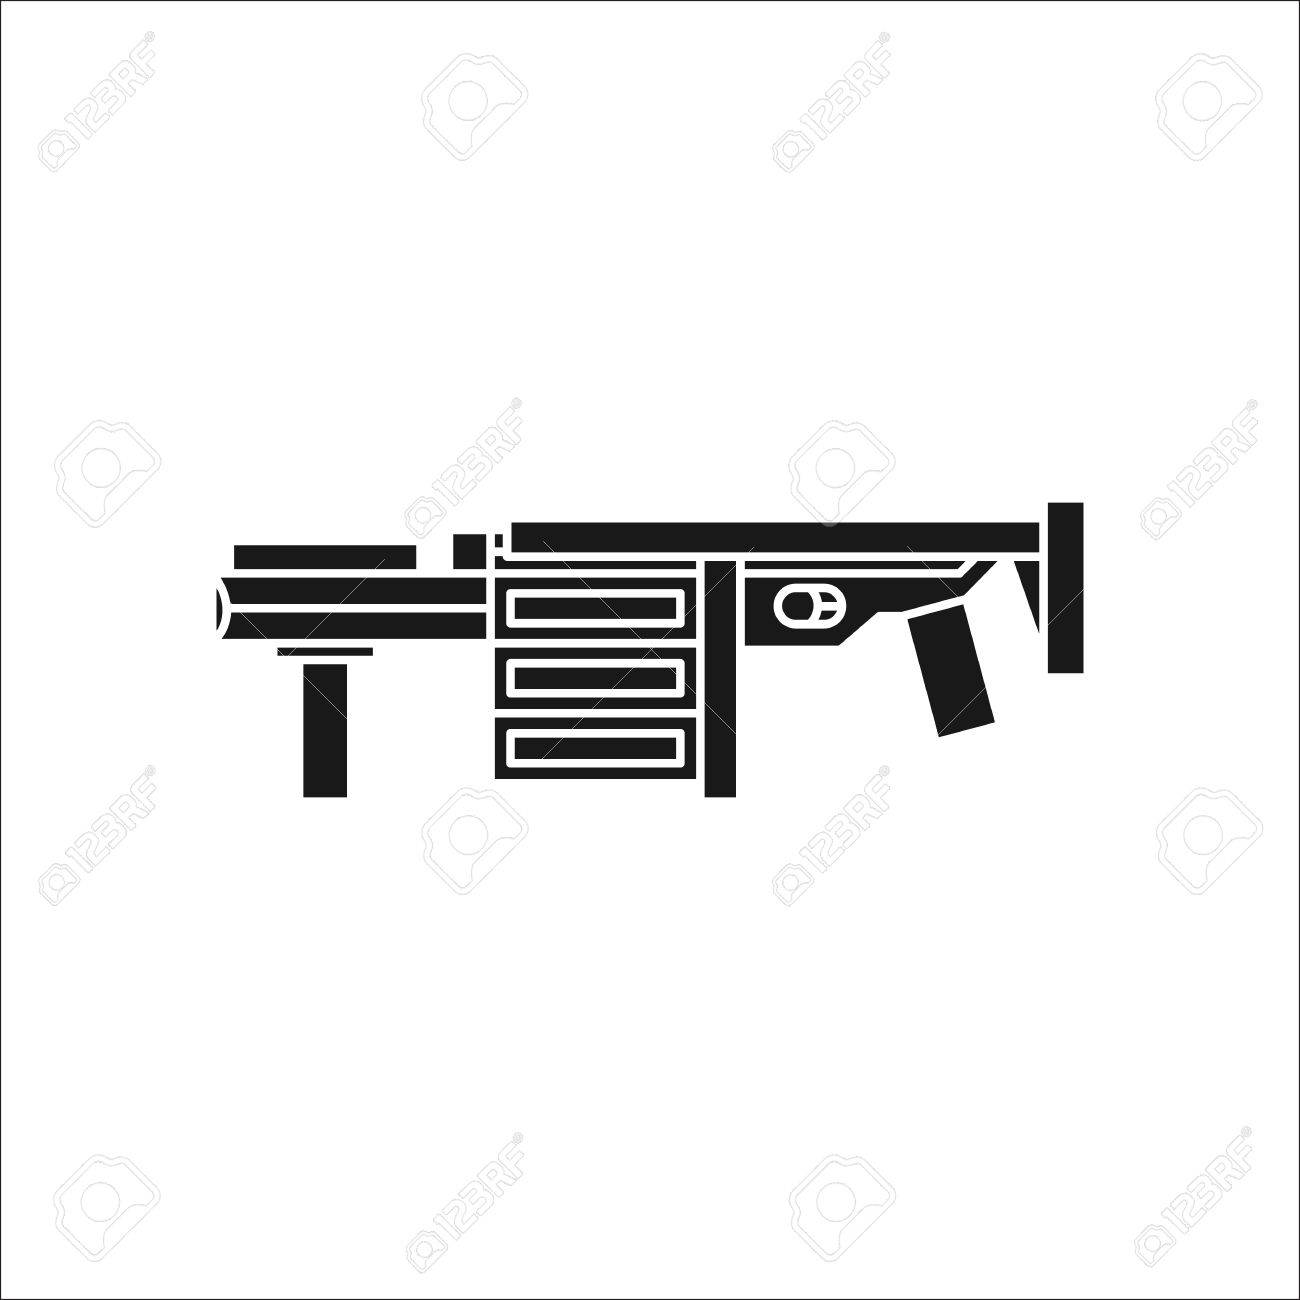 Grenade launcher gun symbol sign silhouette icon on background grenade launcher gun symbol sign silhouette icon on background stock vector 63317841 biocorpaavc Images